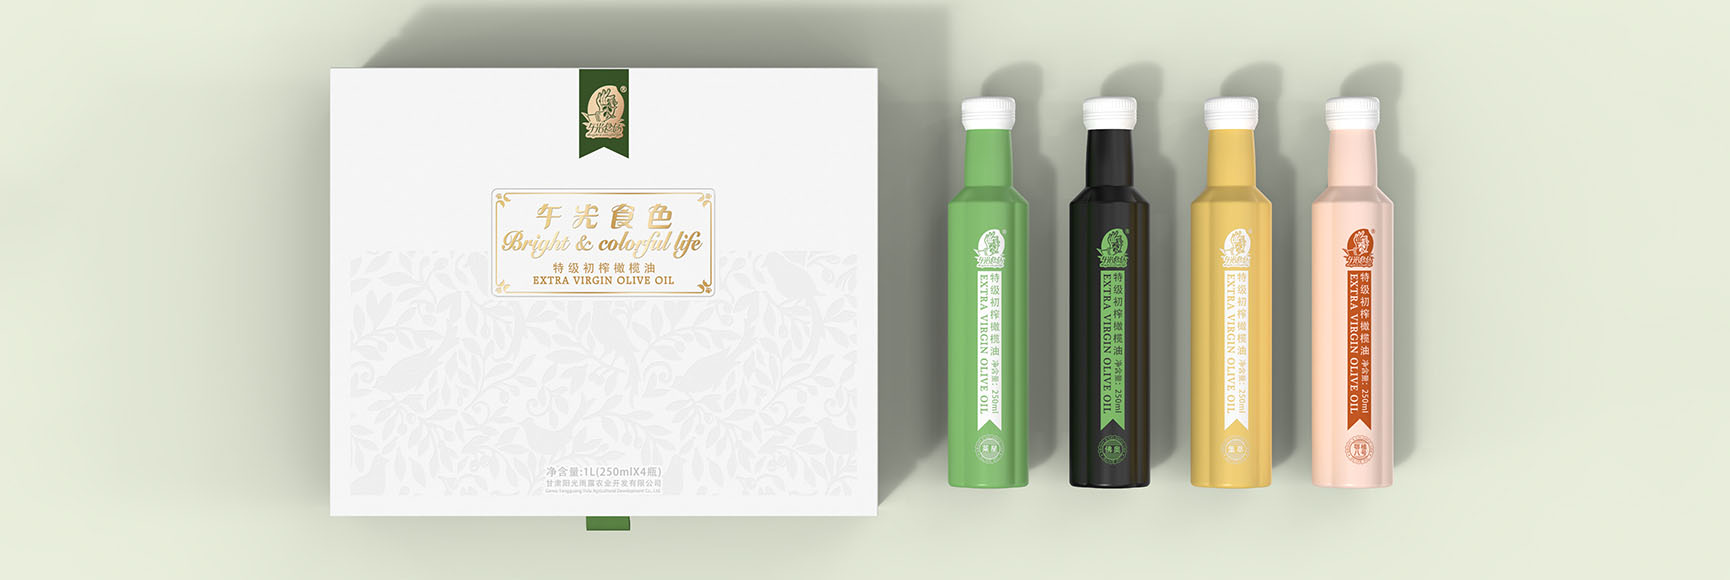 Wu Guang Shi Se Extra virgin olive oil Featured Image